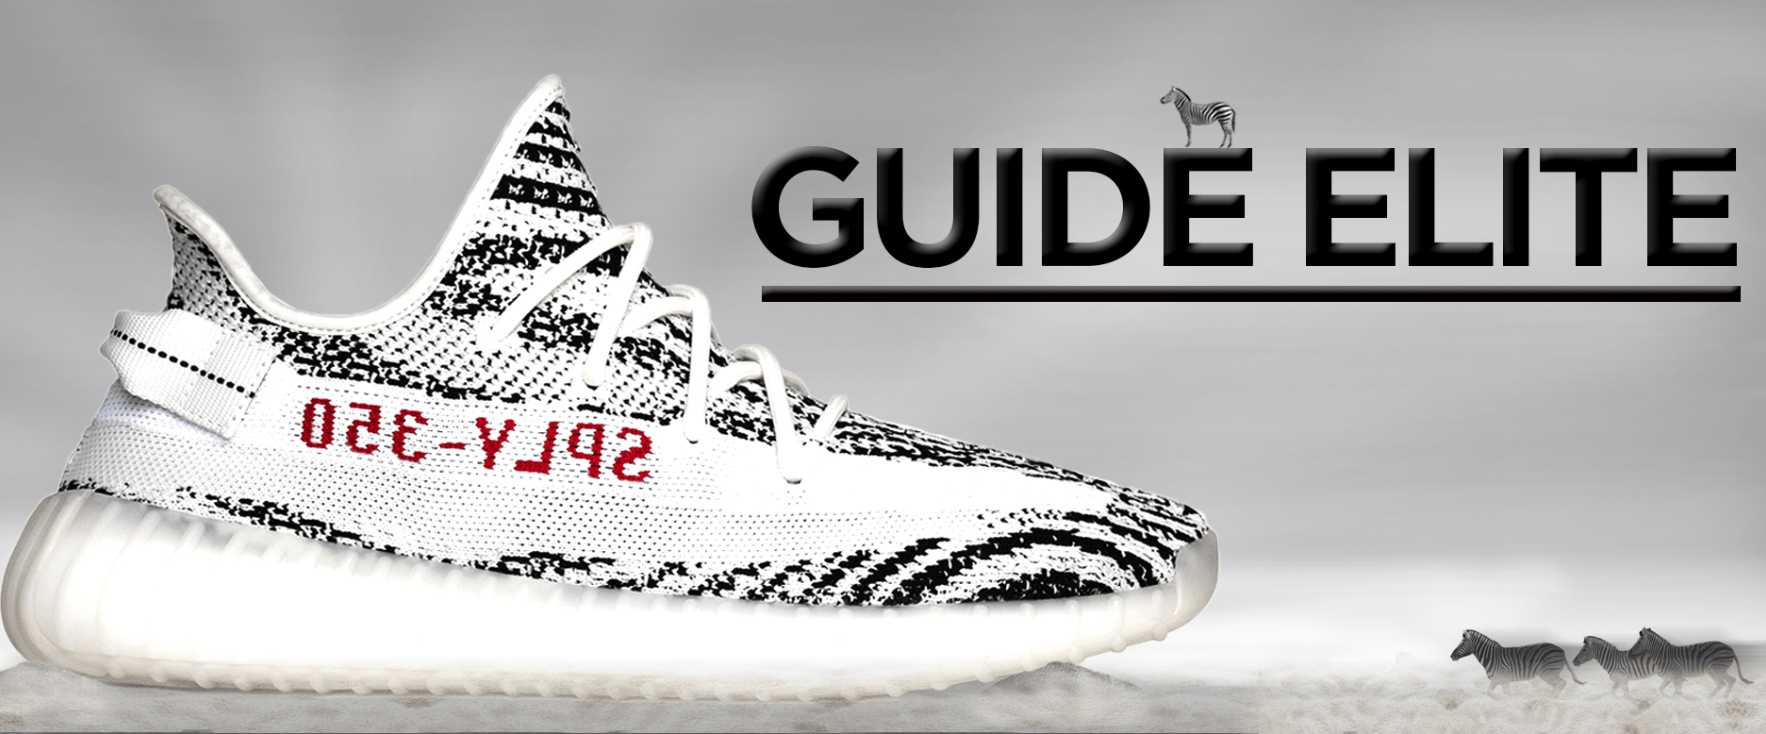 f508d837d 6 Ways To Get Yeezy Zebra Re-release Sneakers